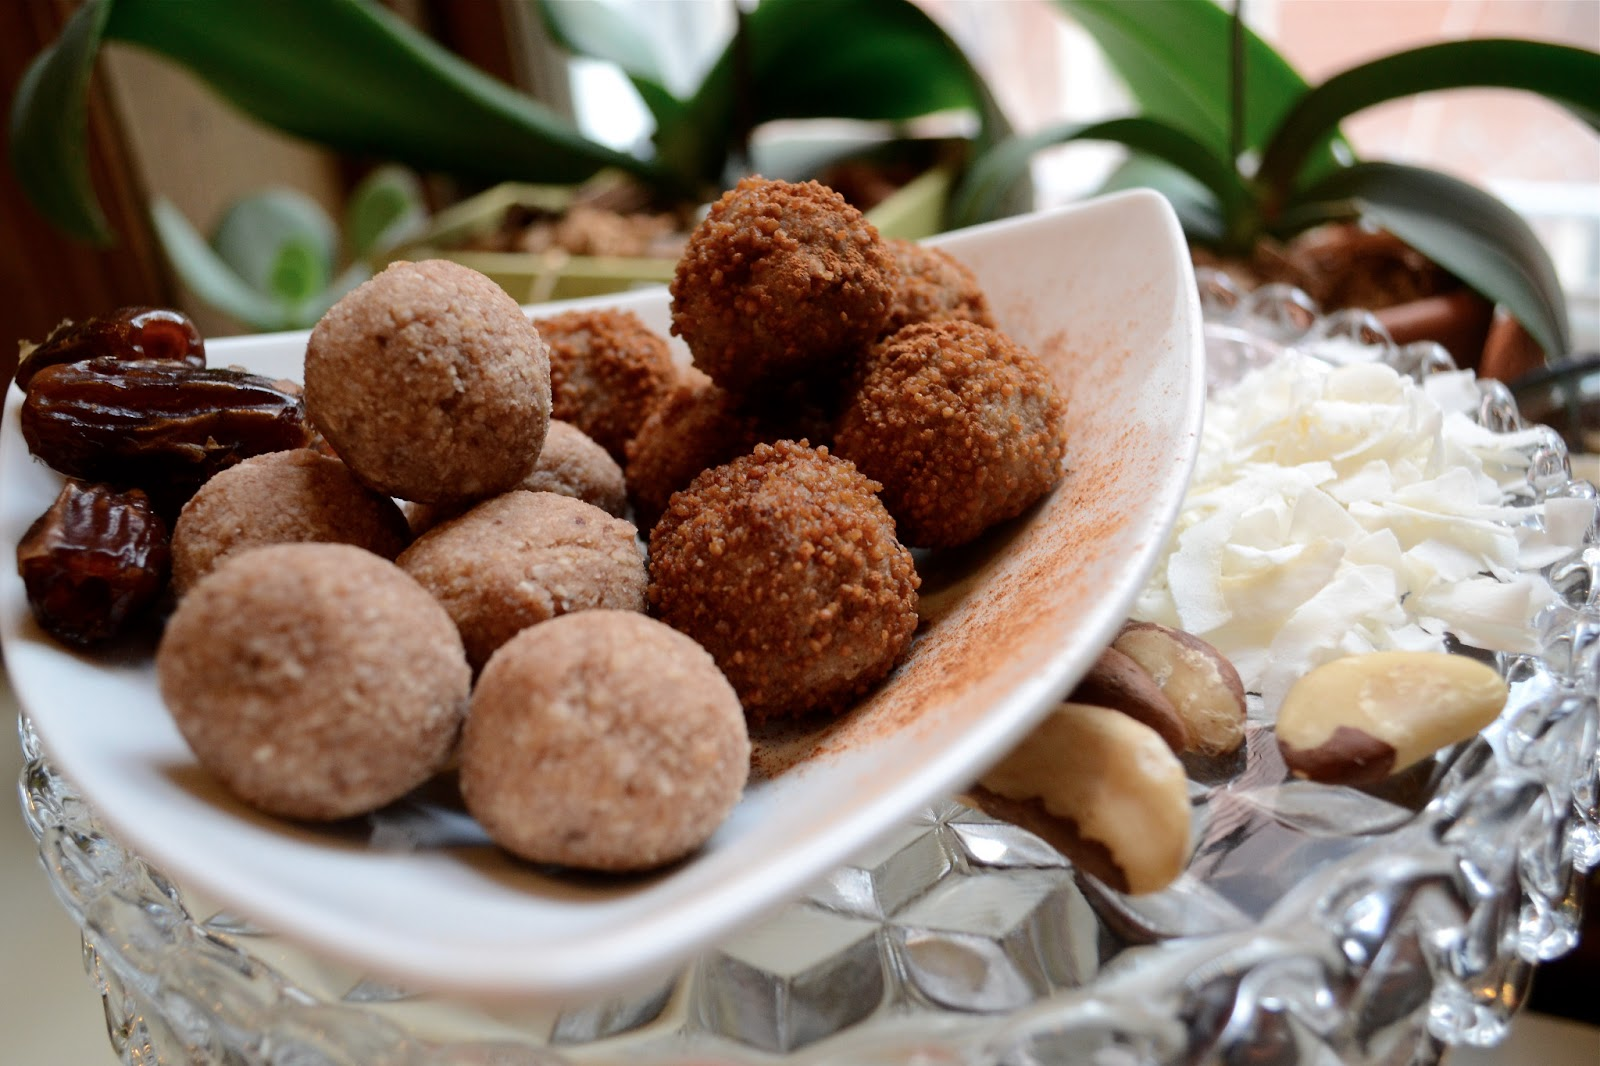 raw vegan dessert, healthy doughnut holes or sweet energy balls